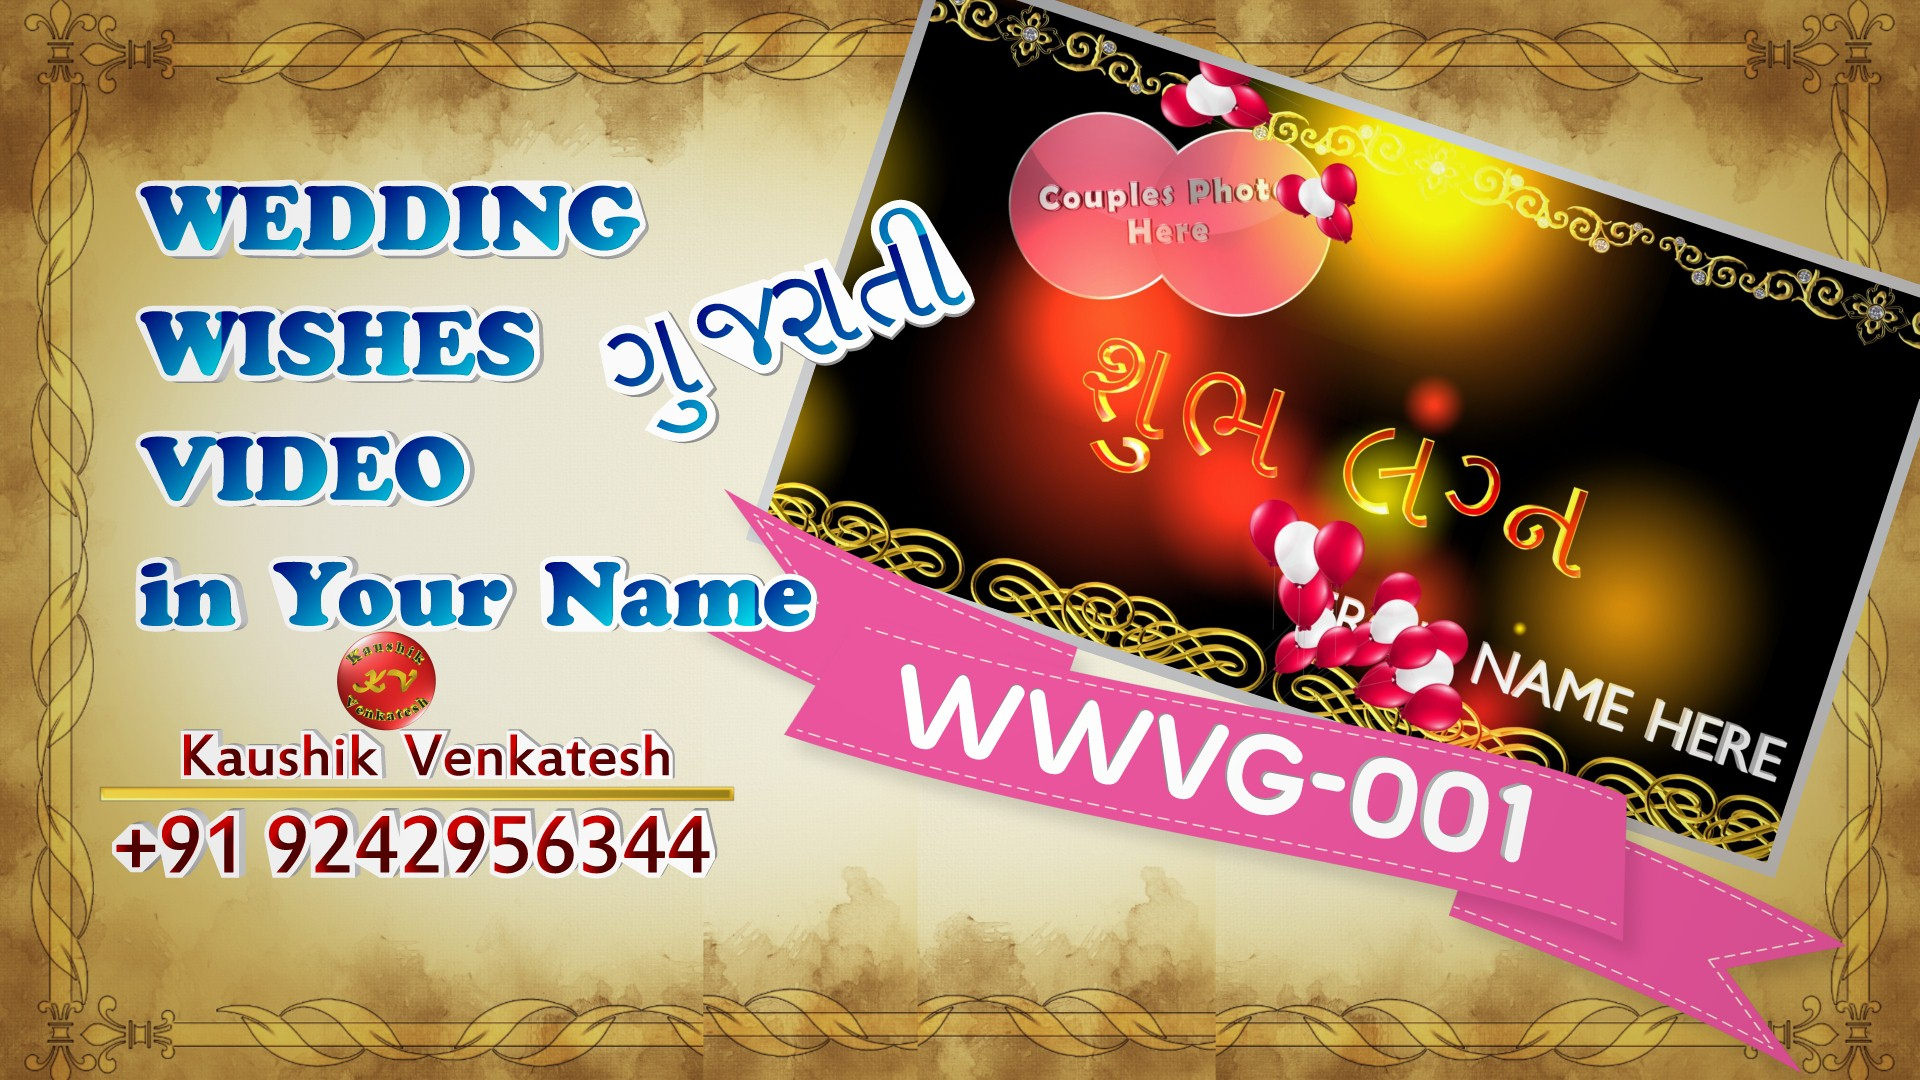 Product Image of Personalized Happy Wedding Wishes Video in Gujarati font.